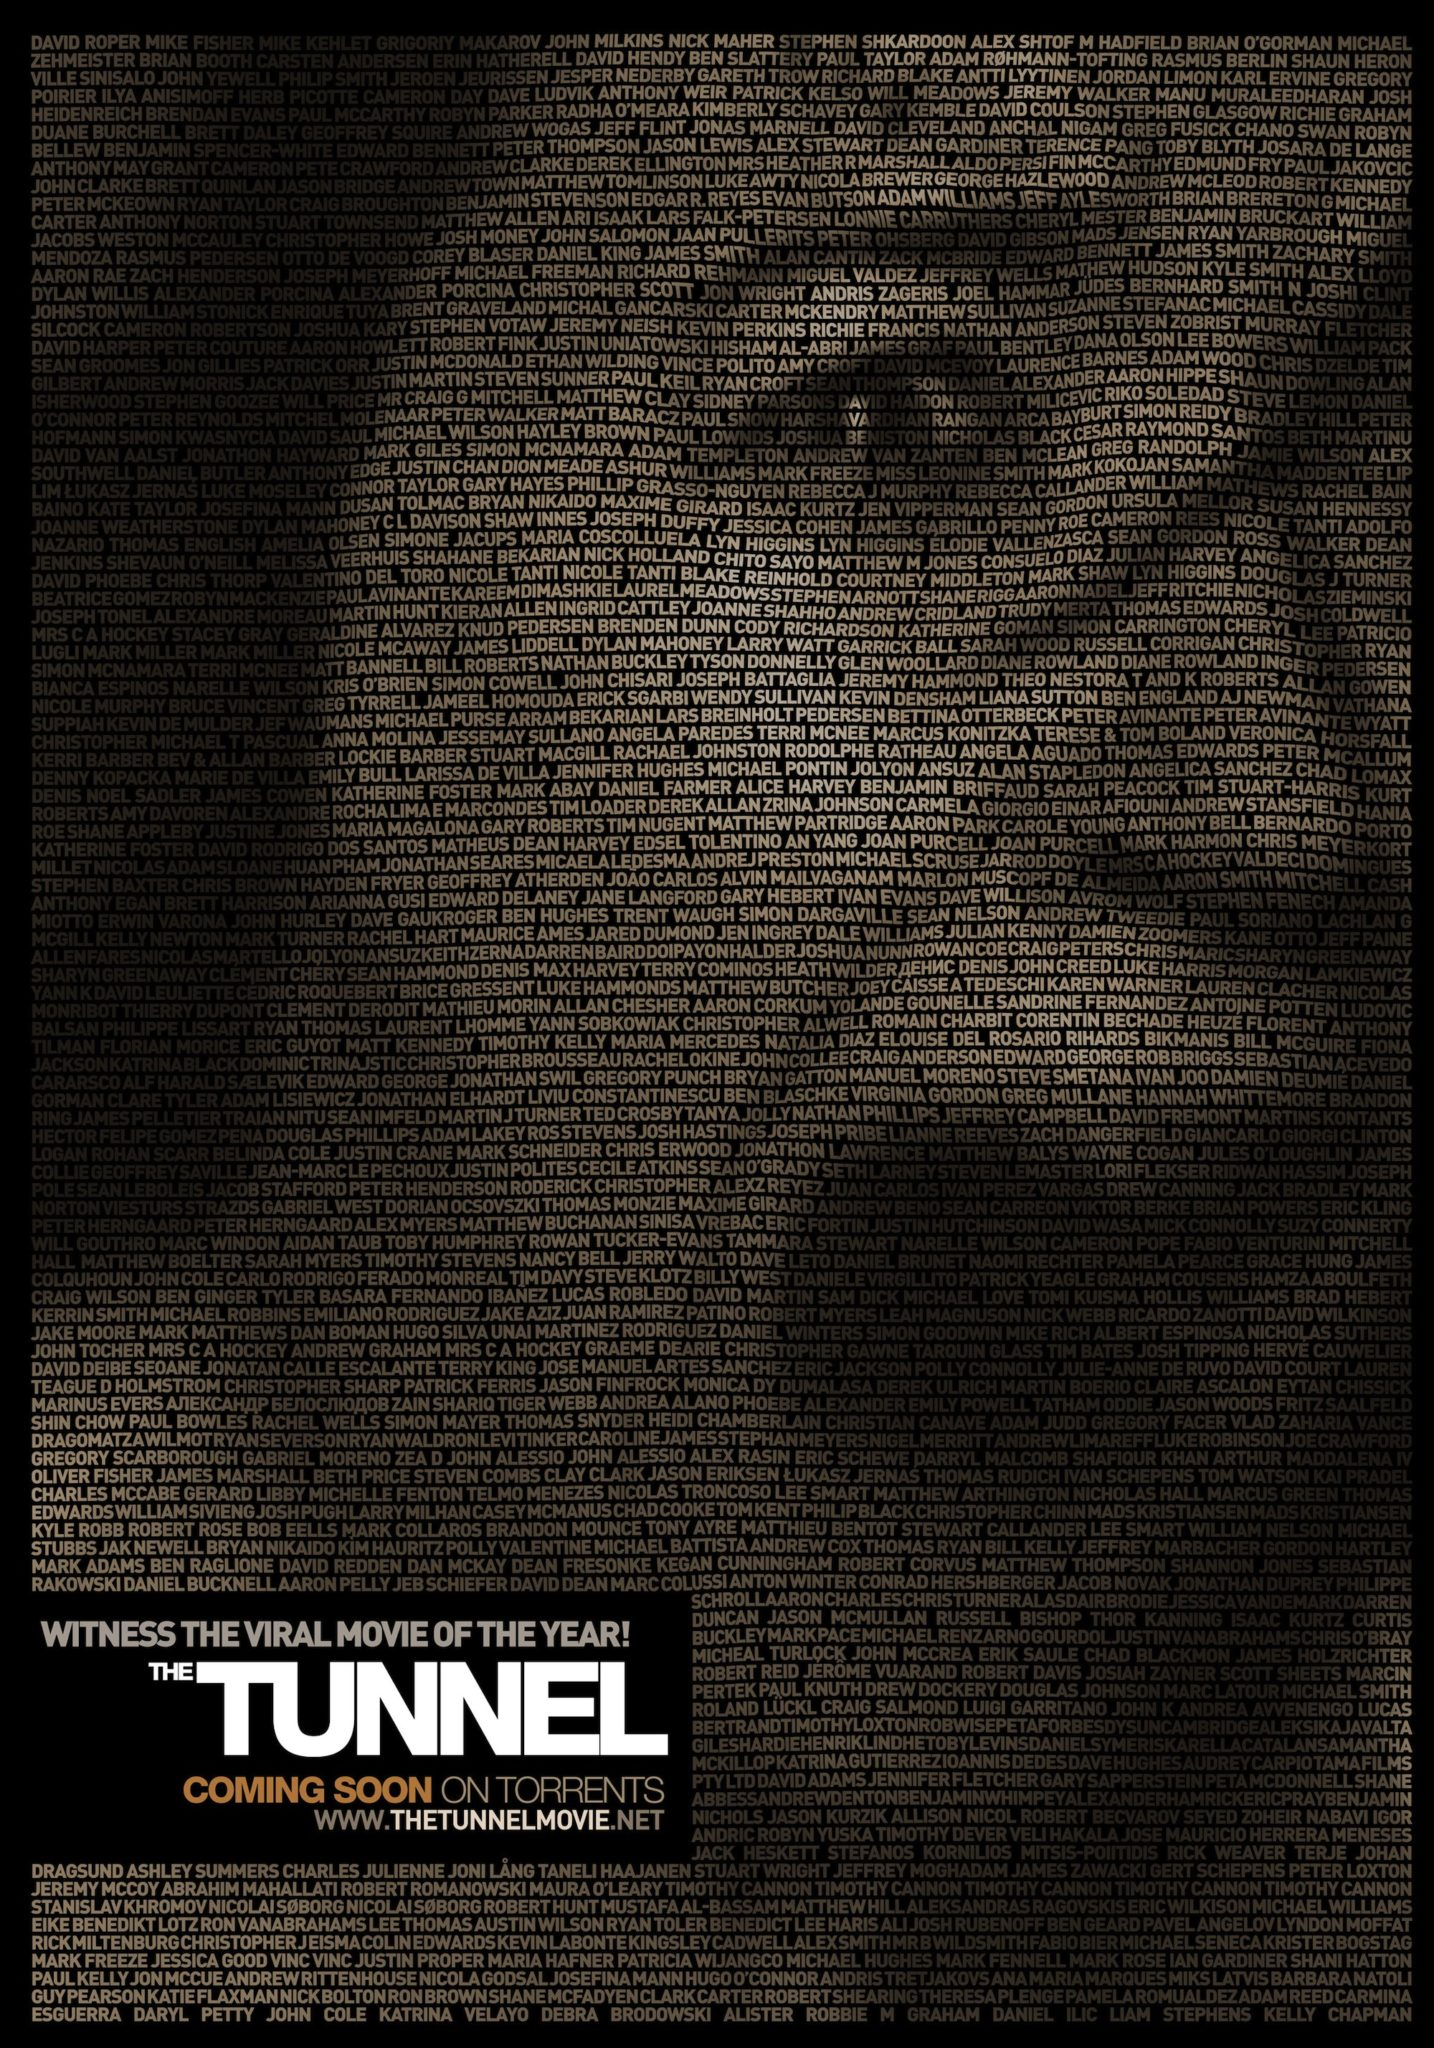 3 the tunnel